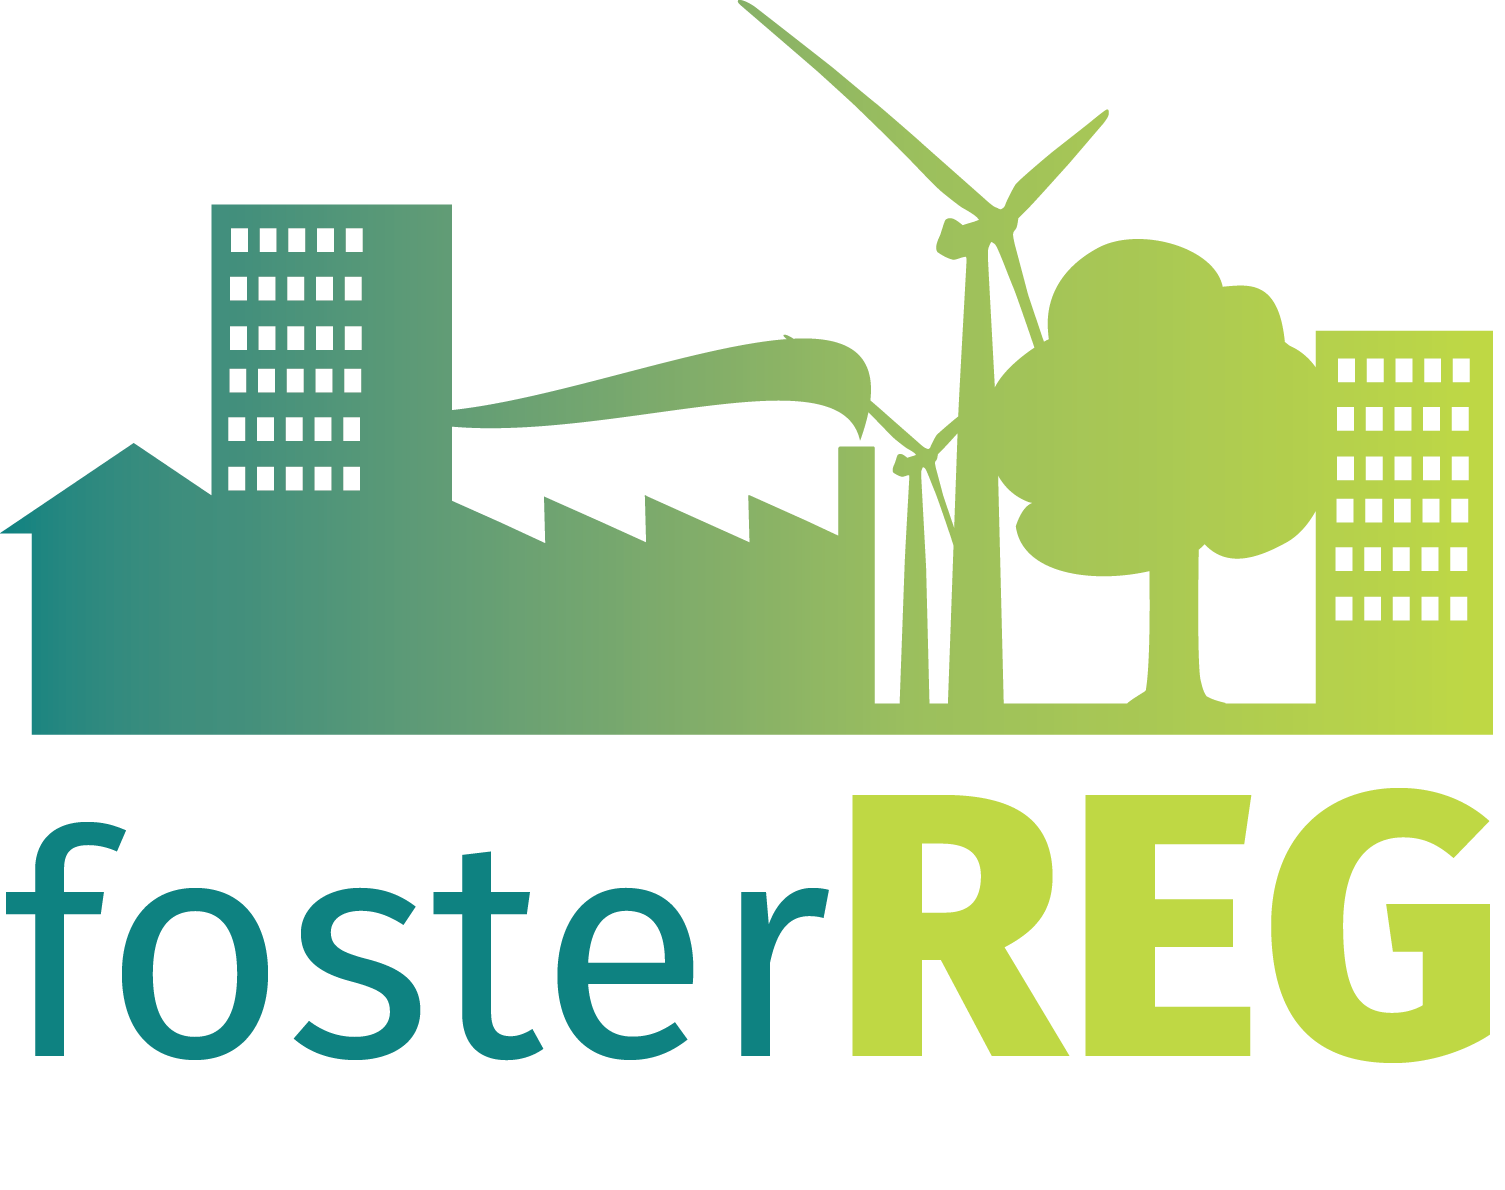 Fosterreg project completes activities. Collaboration clipart capacity building